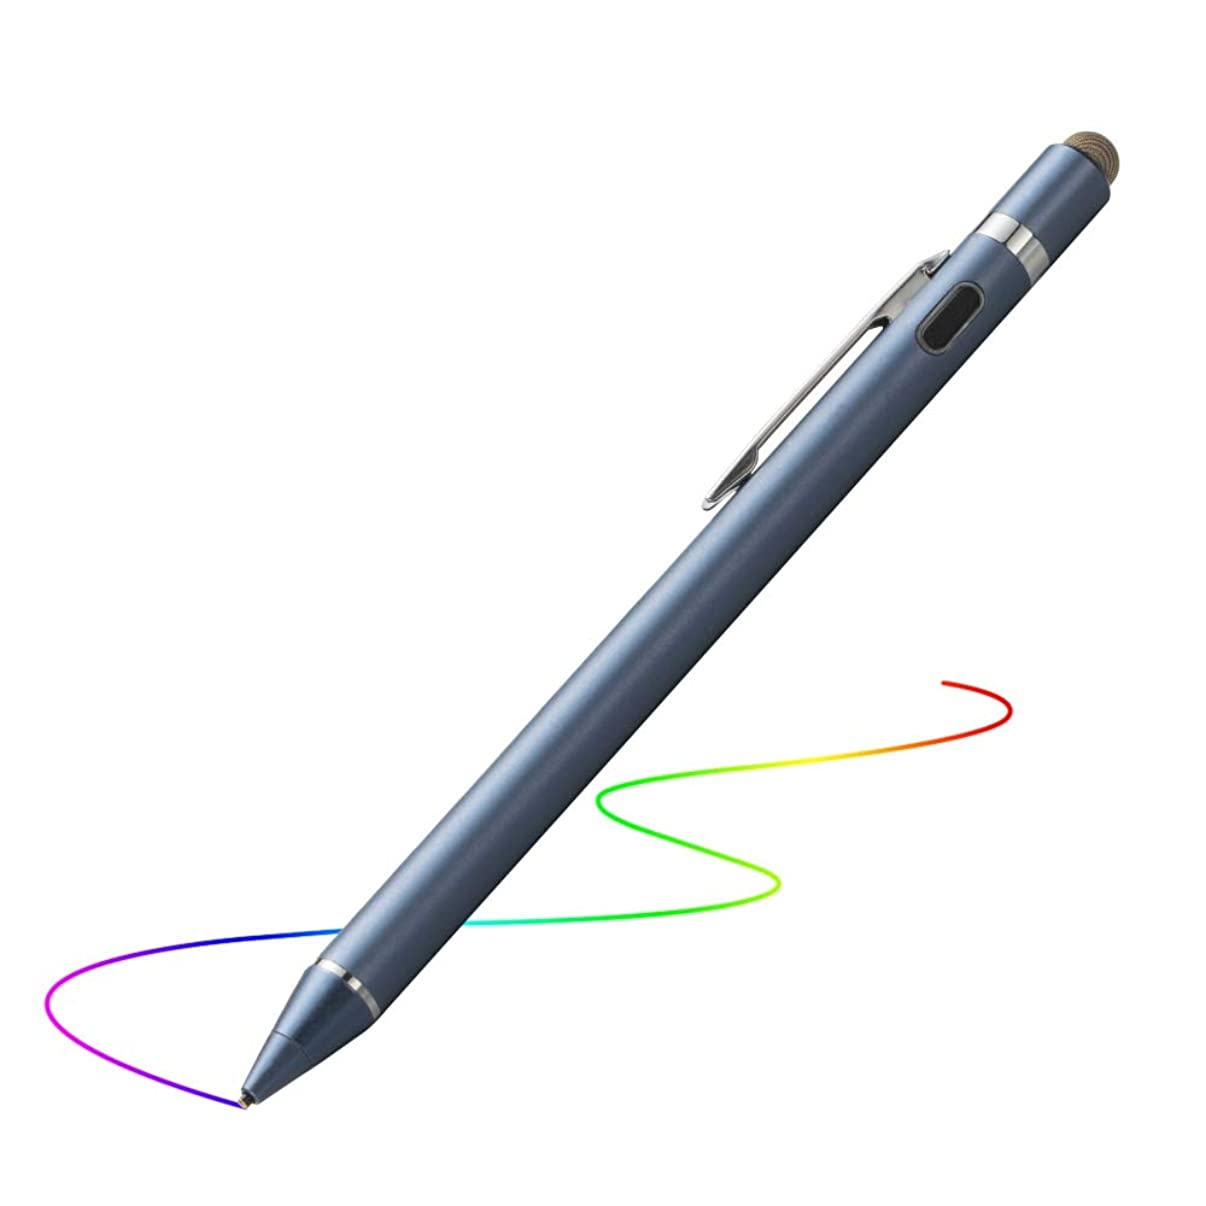 Active Stylus for iPad, Evach Capacitive Rechargeable Pen with 1.5mm Ultra Fine Tip, Touchscreen Pencil Control-Like for Apple Pen and iPhone Stylus,Samsung Pen for Tablets (Dark Blue)